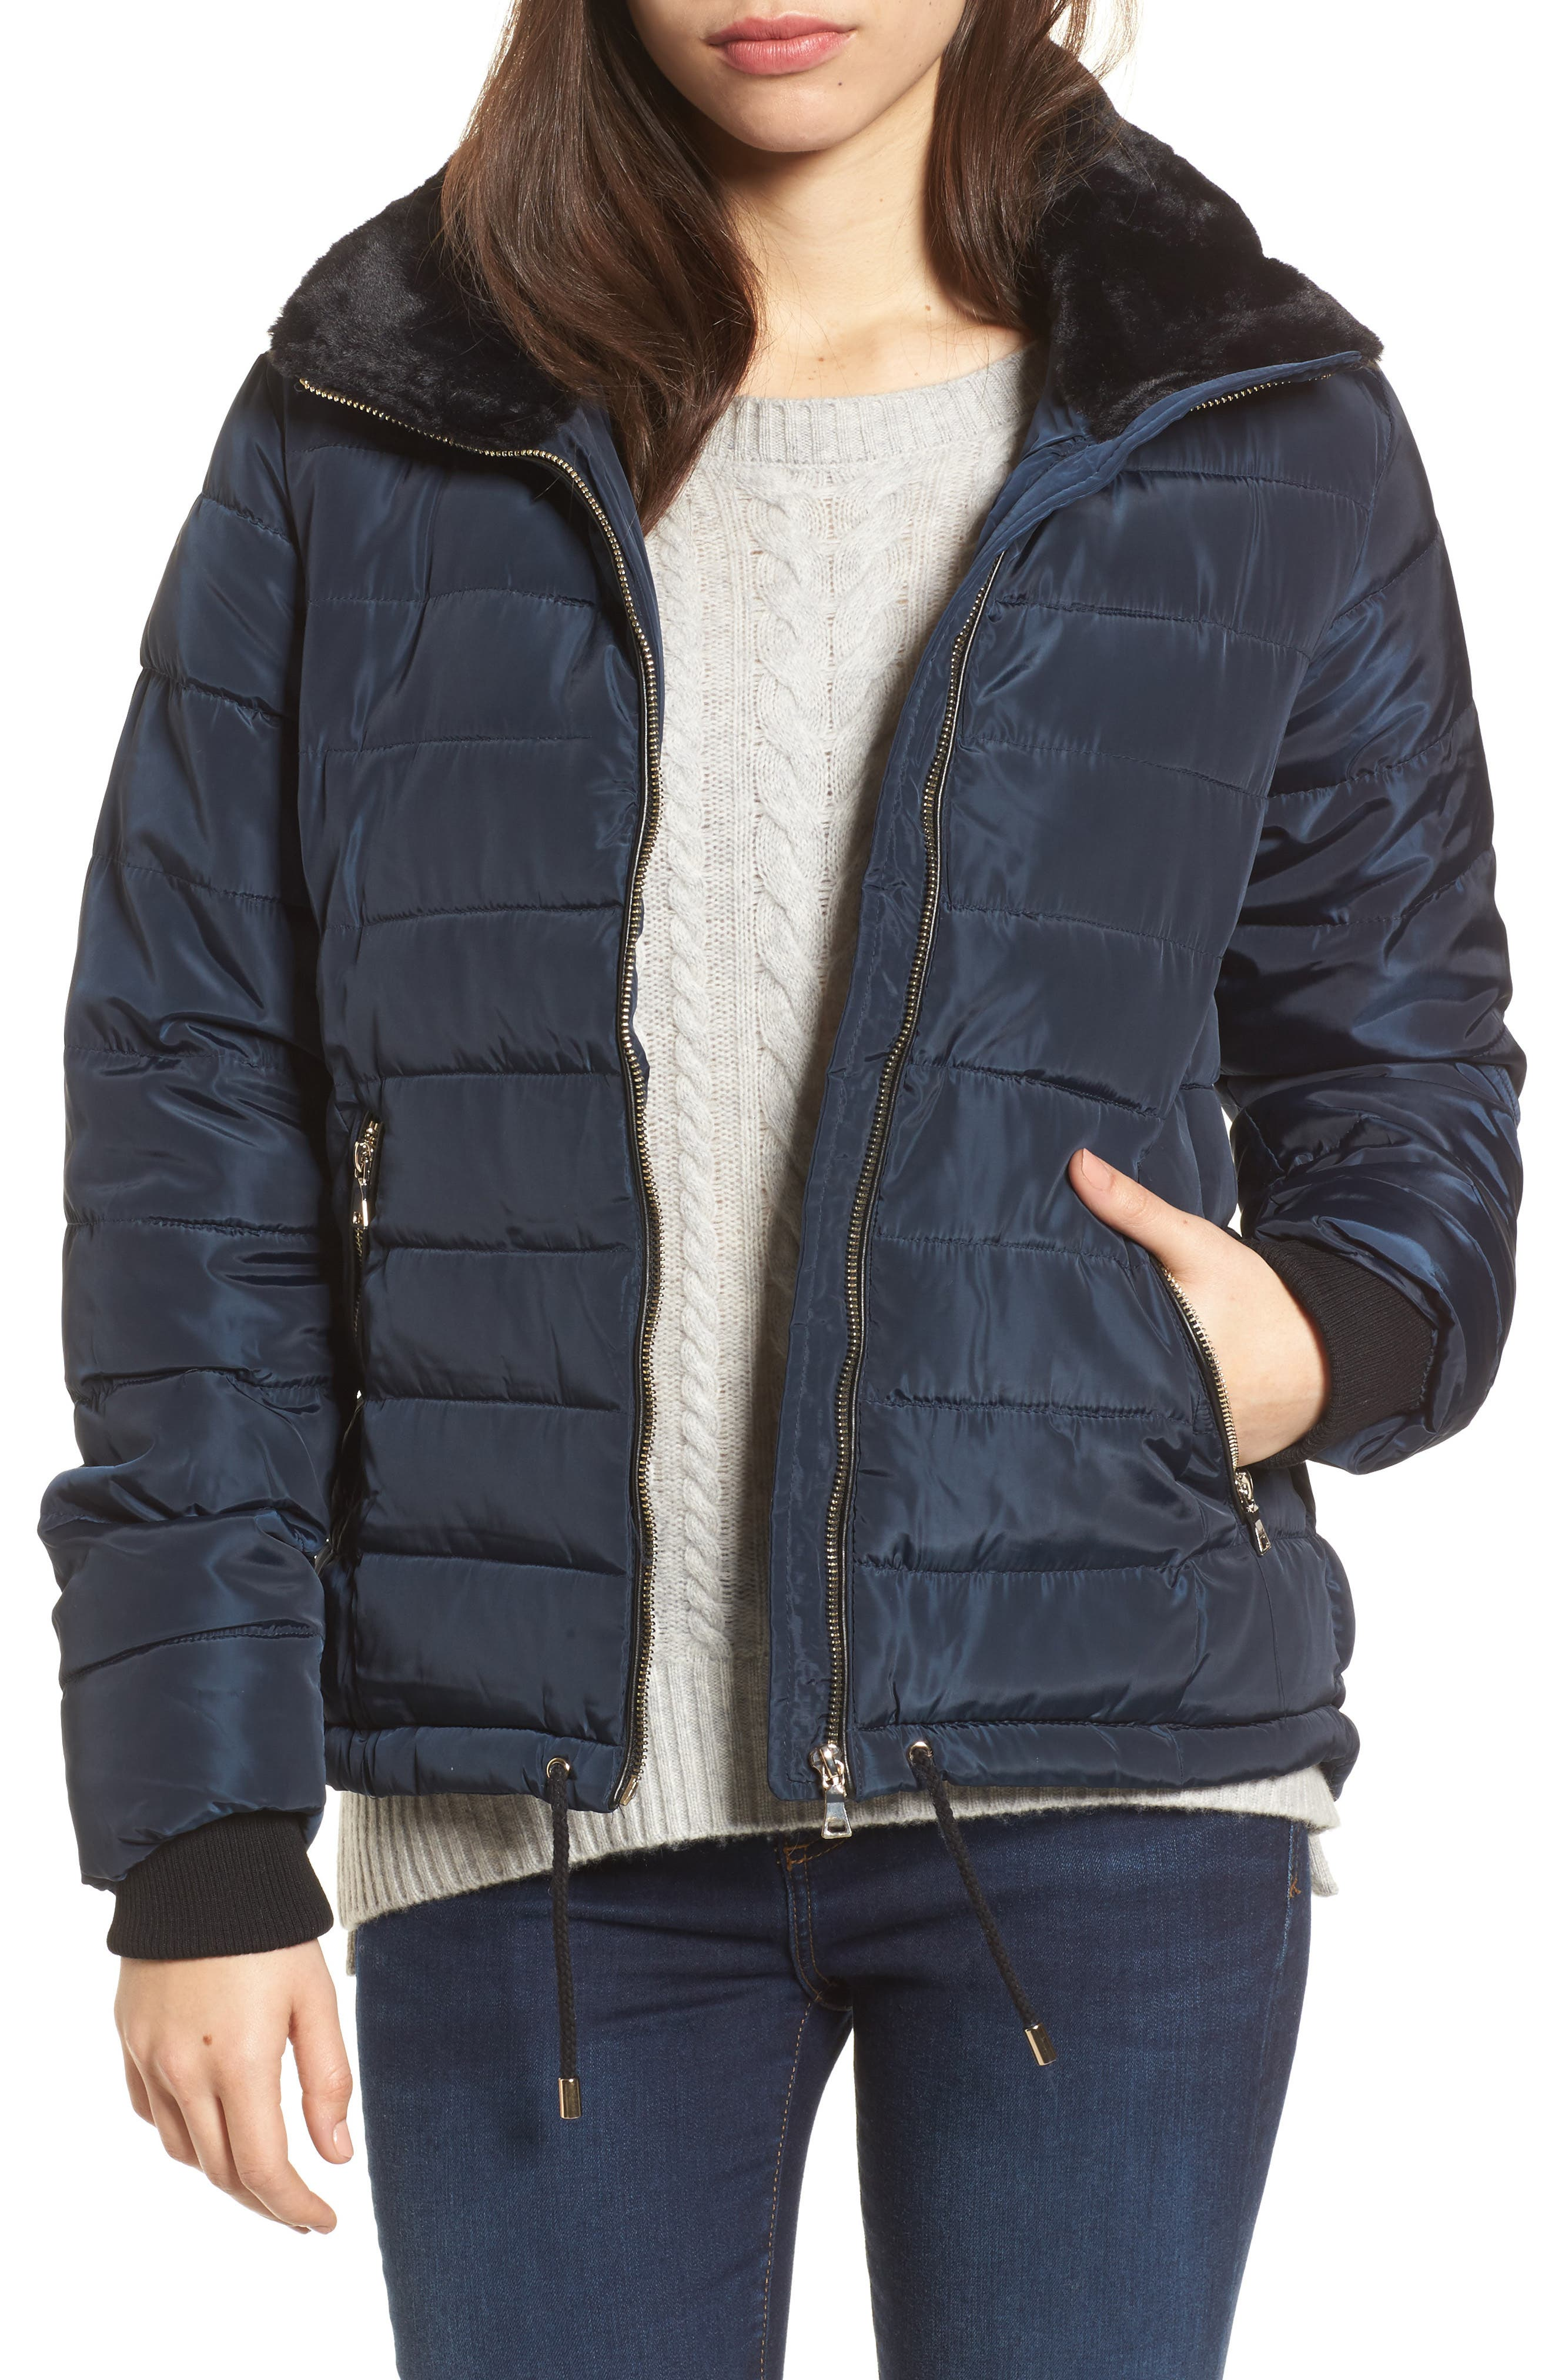 Main Image - Dorothy Perkins Puffer Jacket with Faux Fur Collar Lining